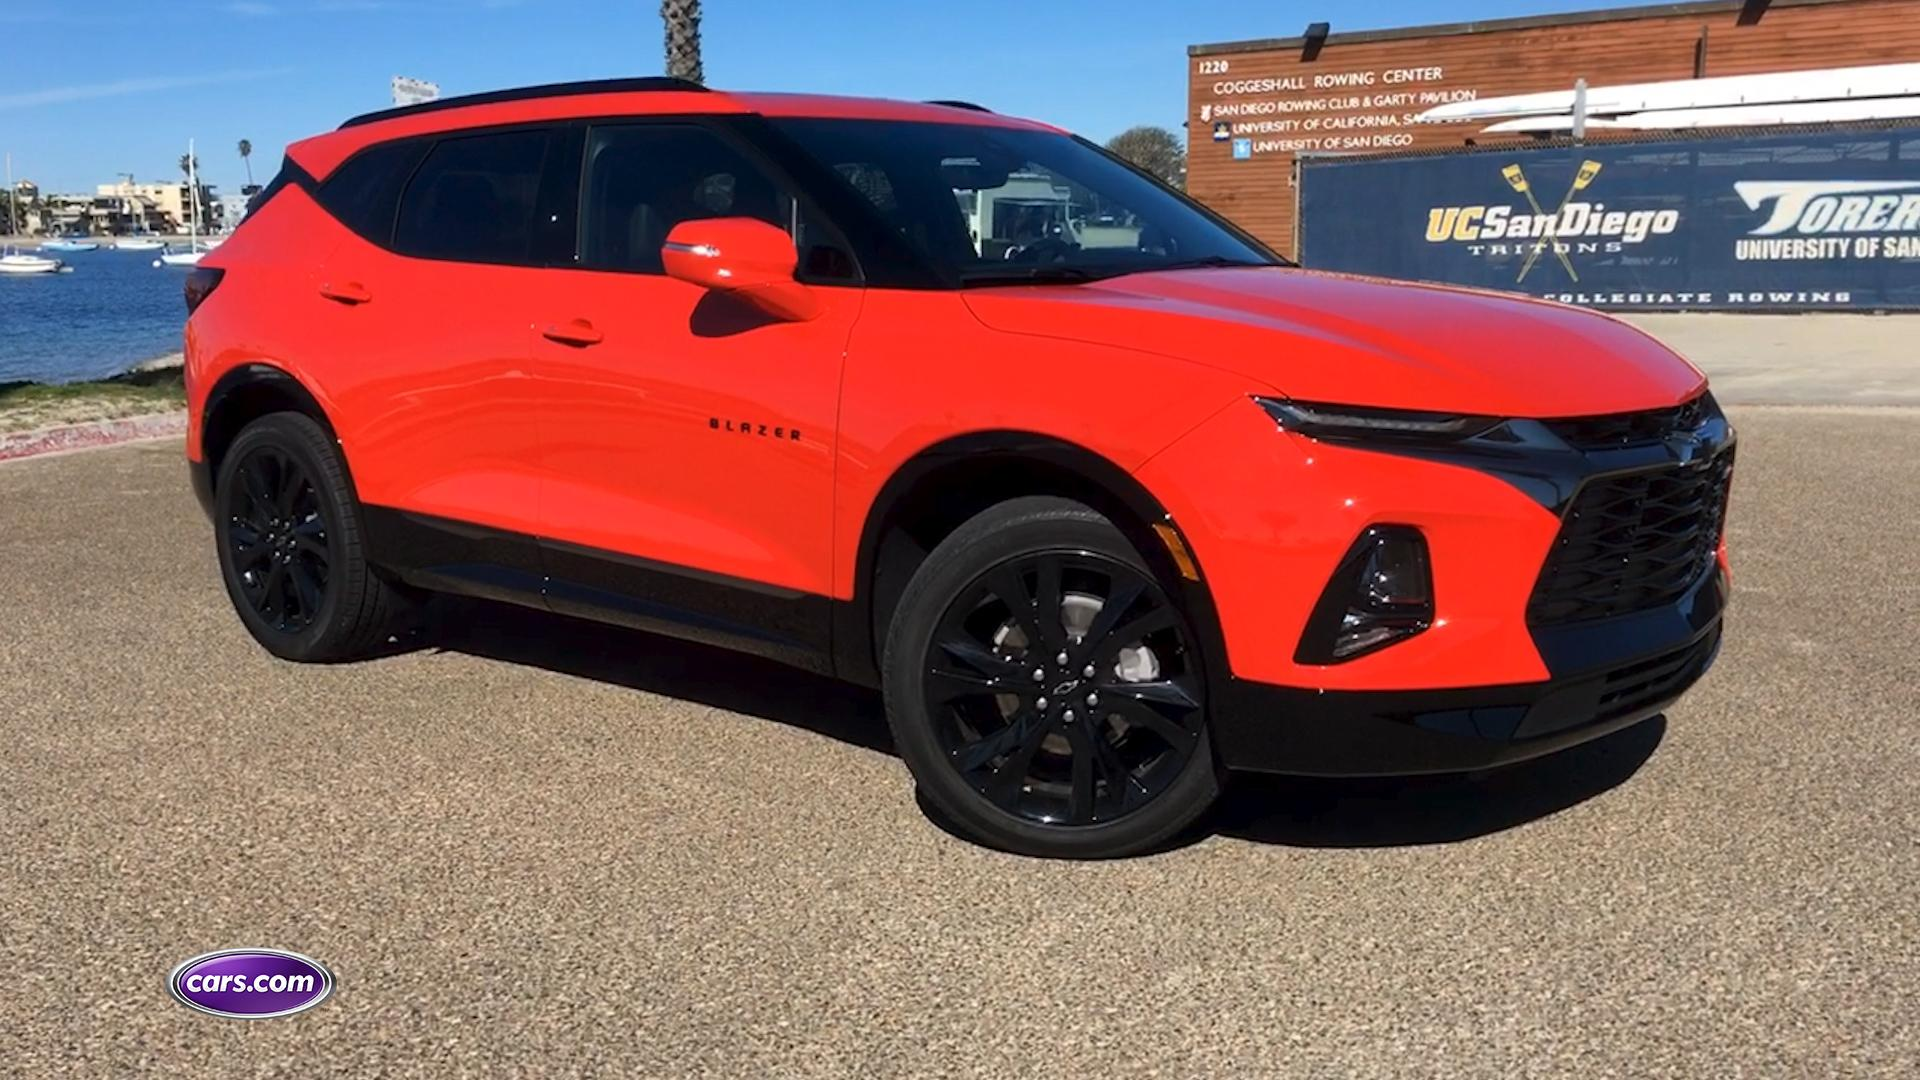 2019 Chevrolet Blazer: First Drive — Cars.com Video